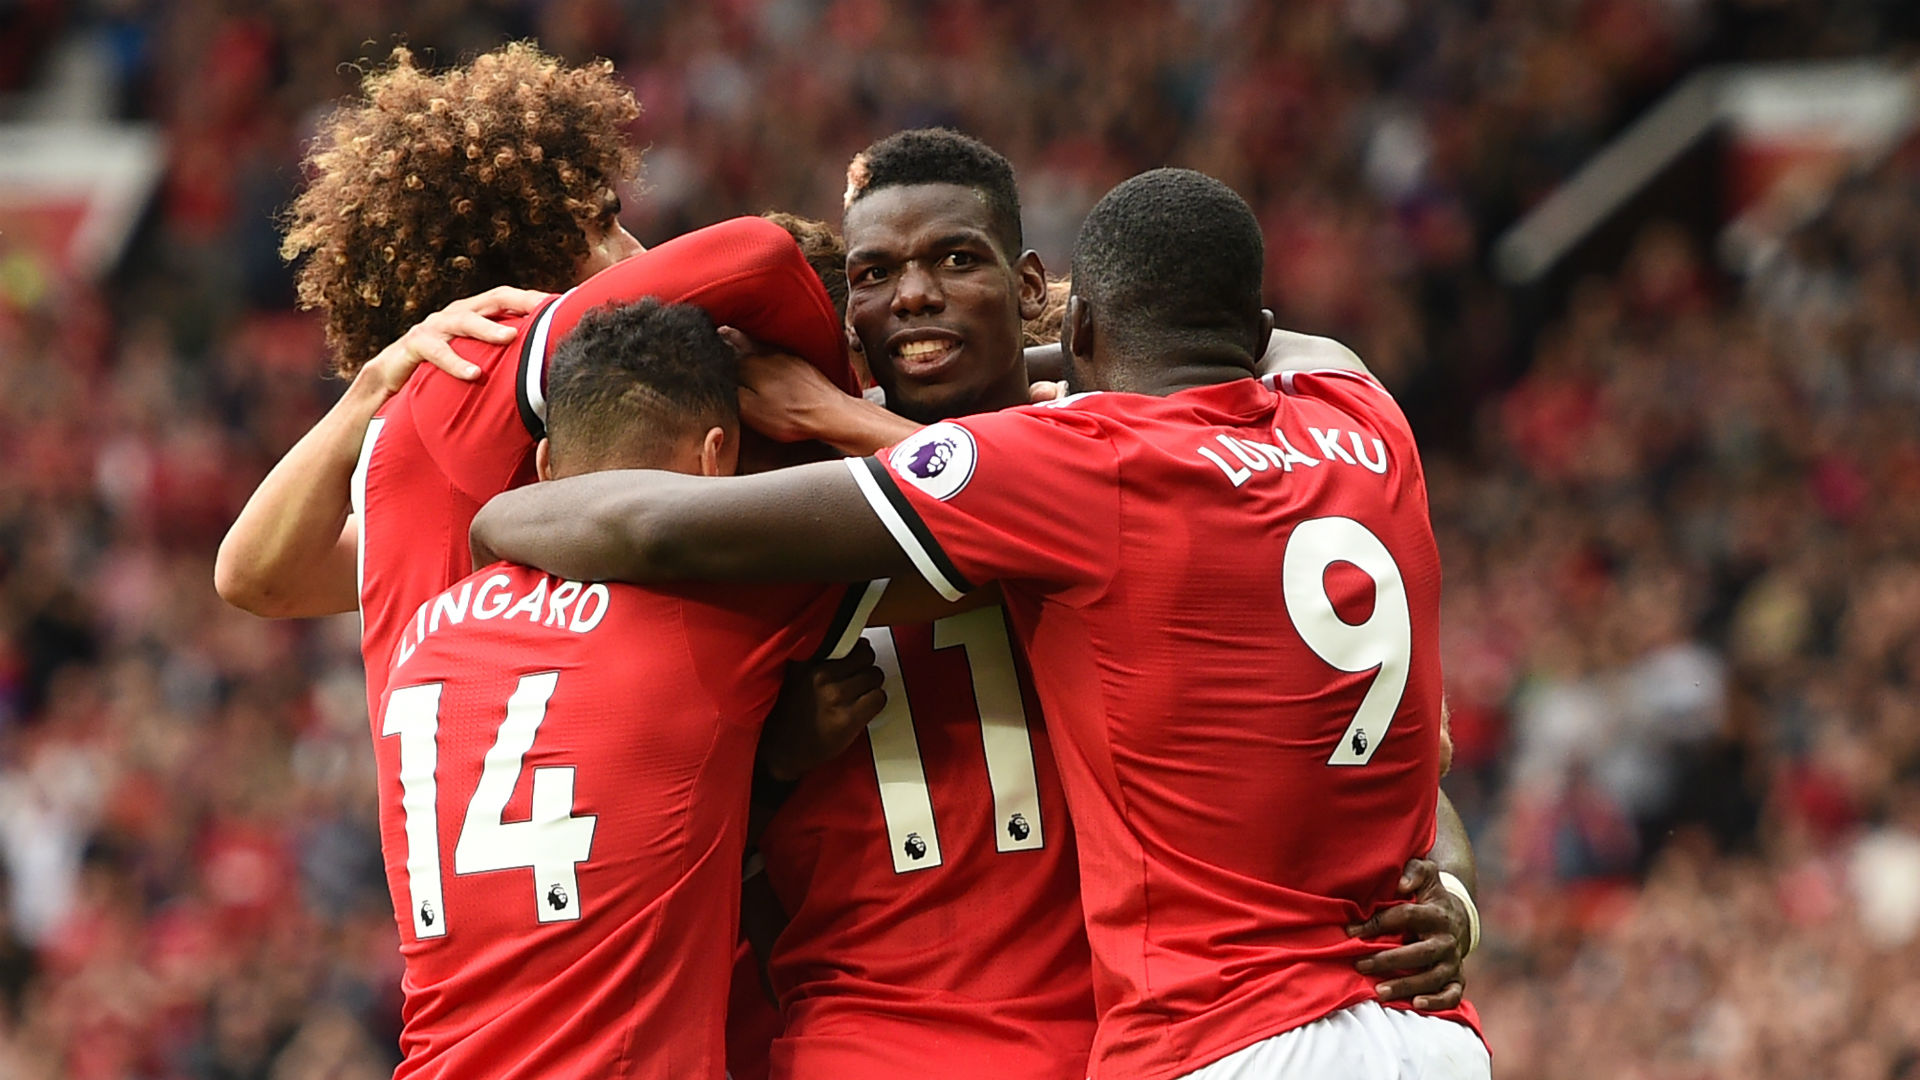 Image Result For Manchester United Vs Man City Which Side Is